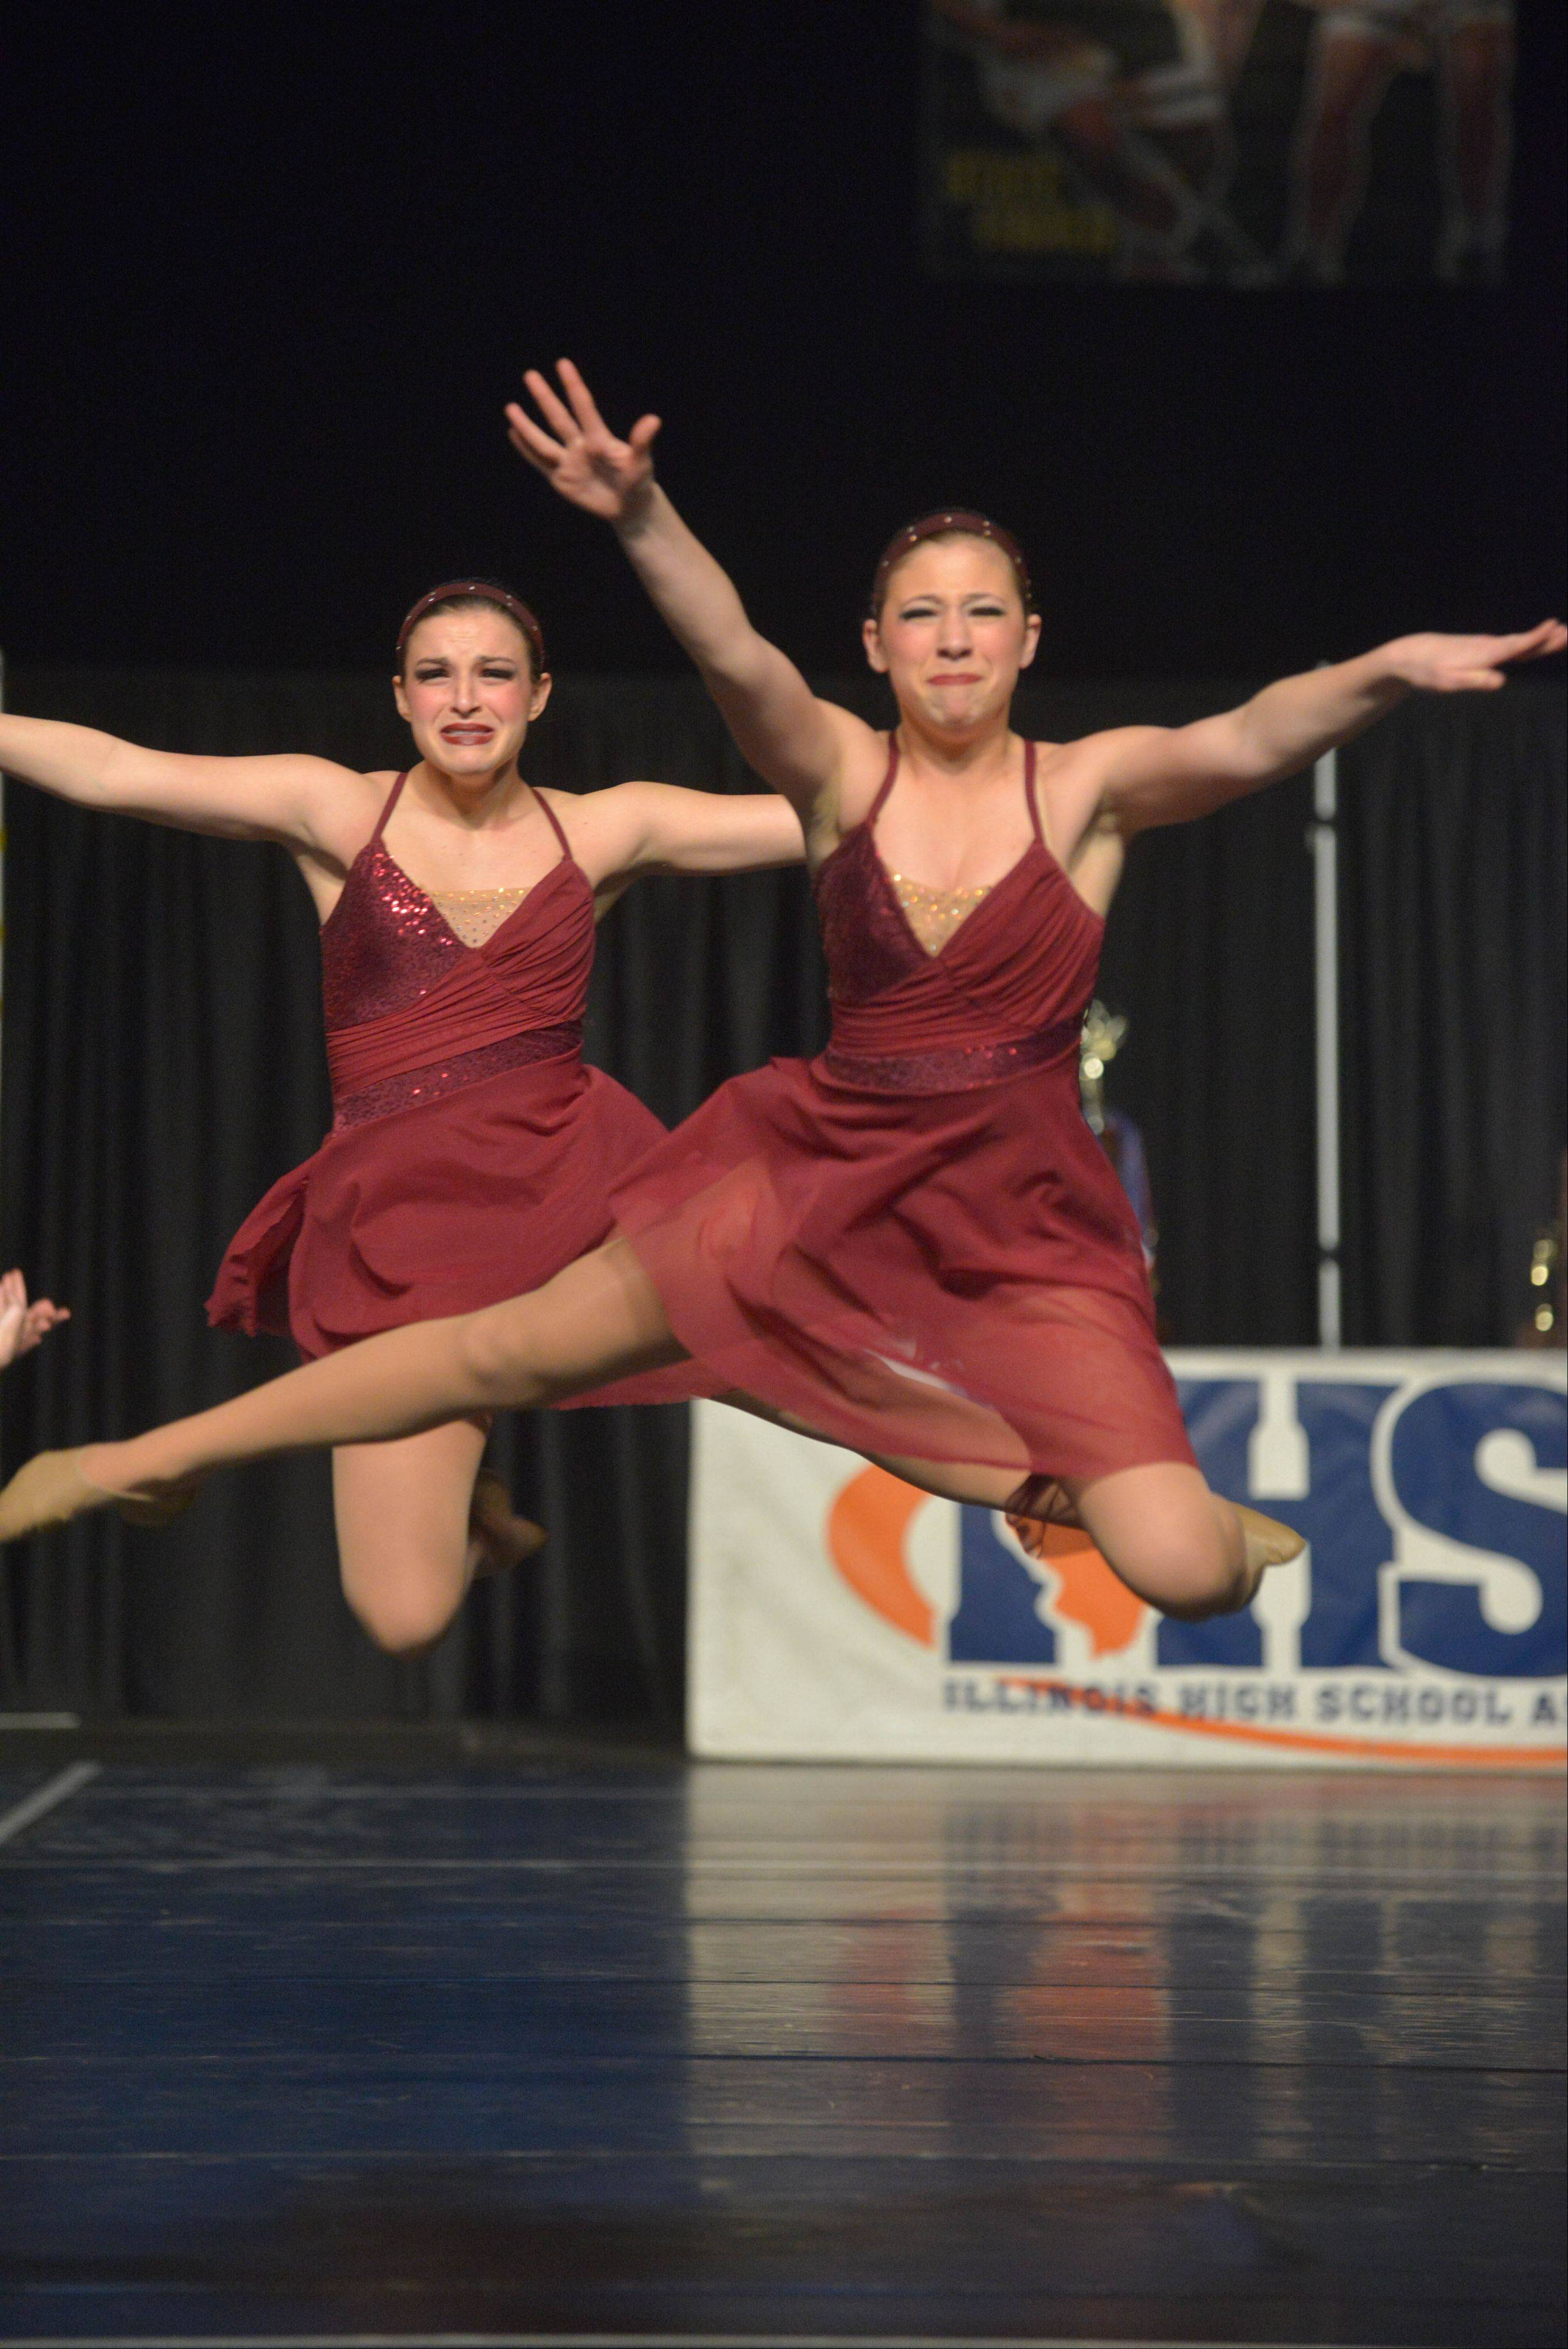 Libertyville High School took part in the IHSA Dance State Final at U.S. Cellular Coliseum in Bloomington Saturday. 90 teams vied for state champion at this event.